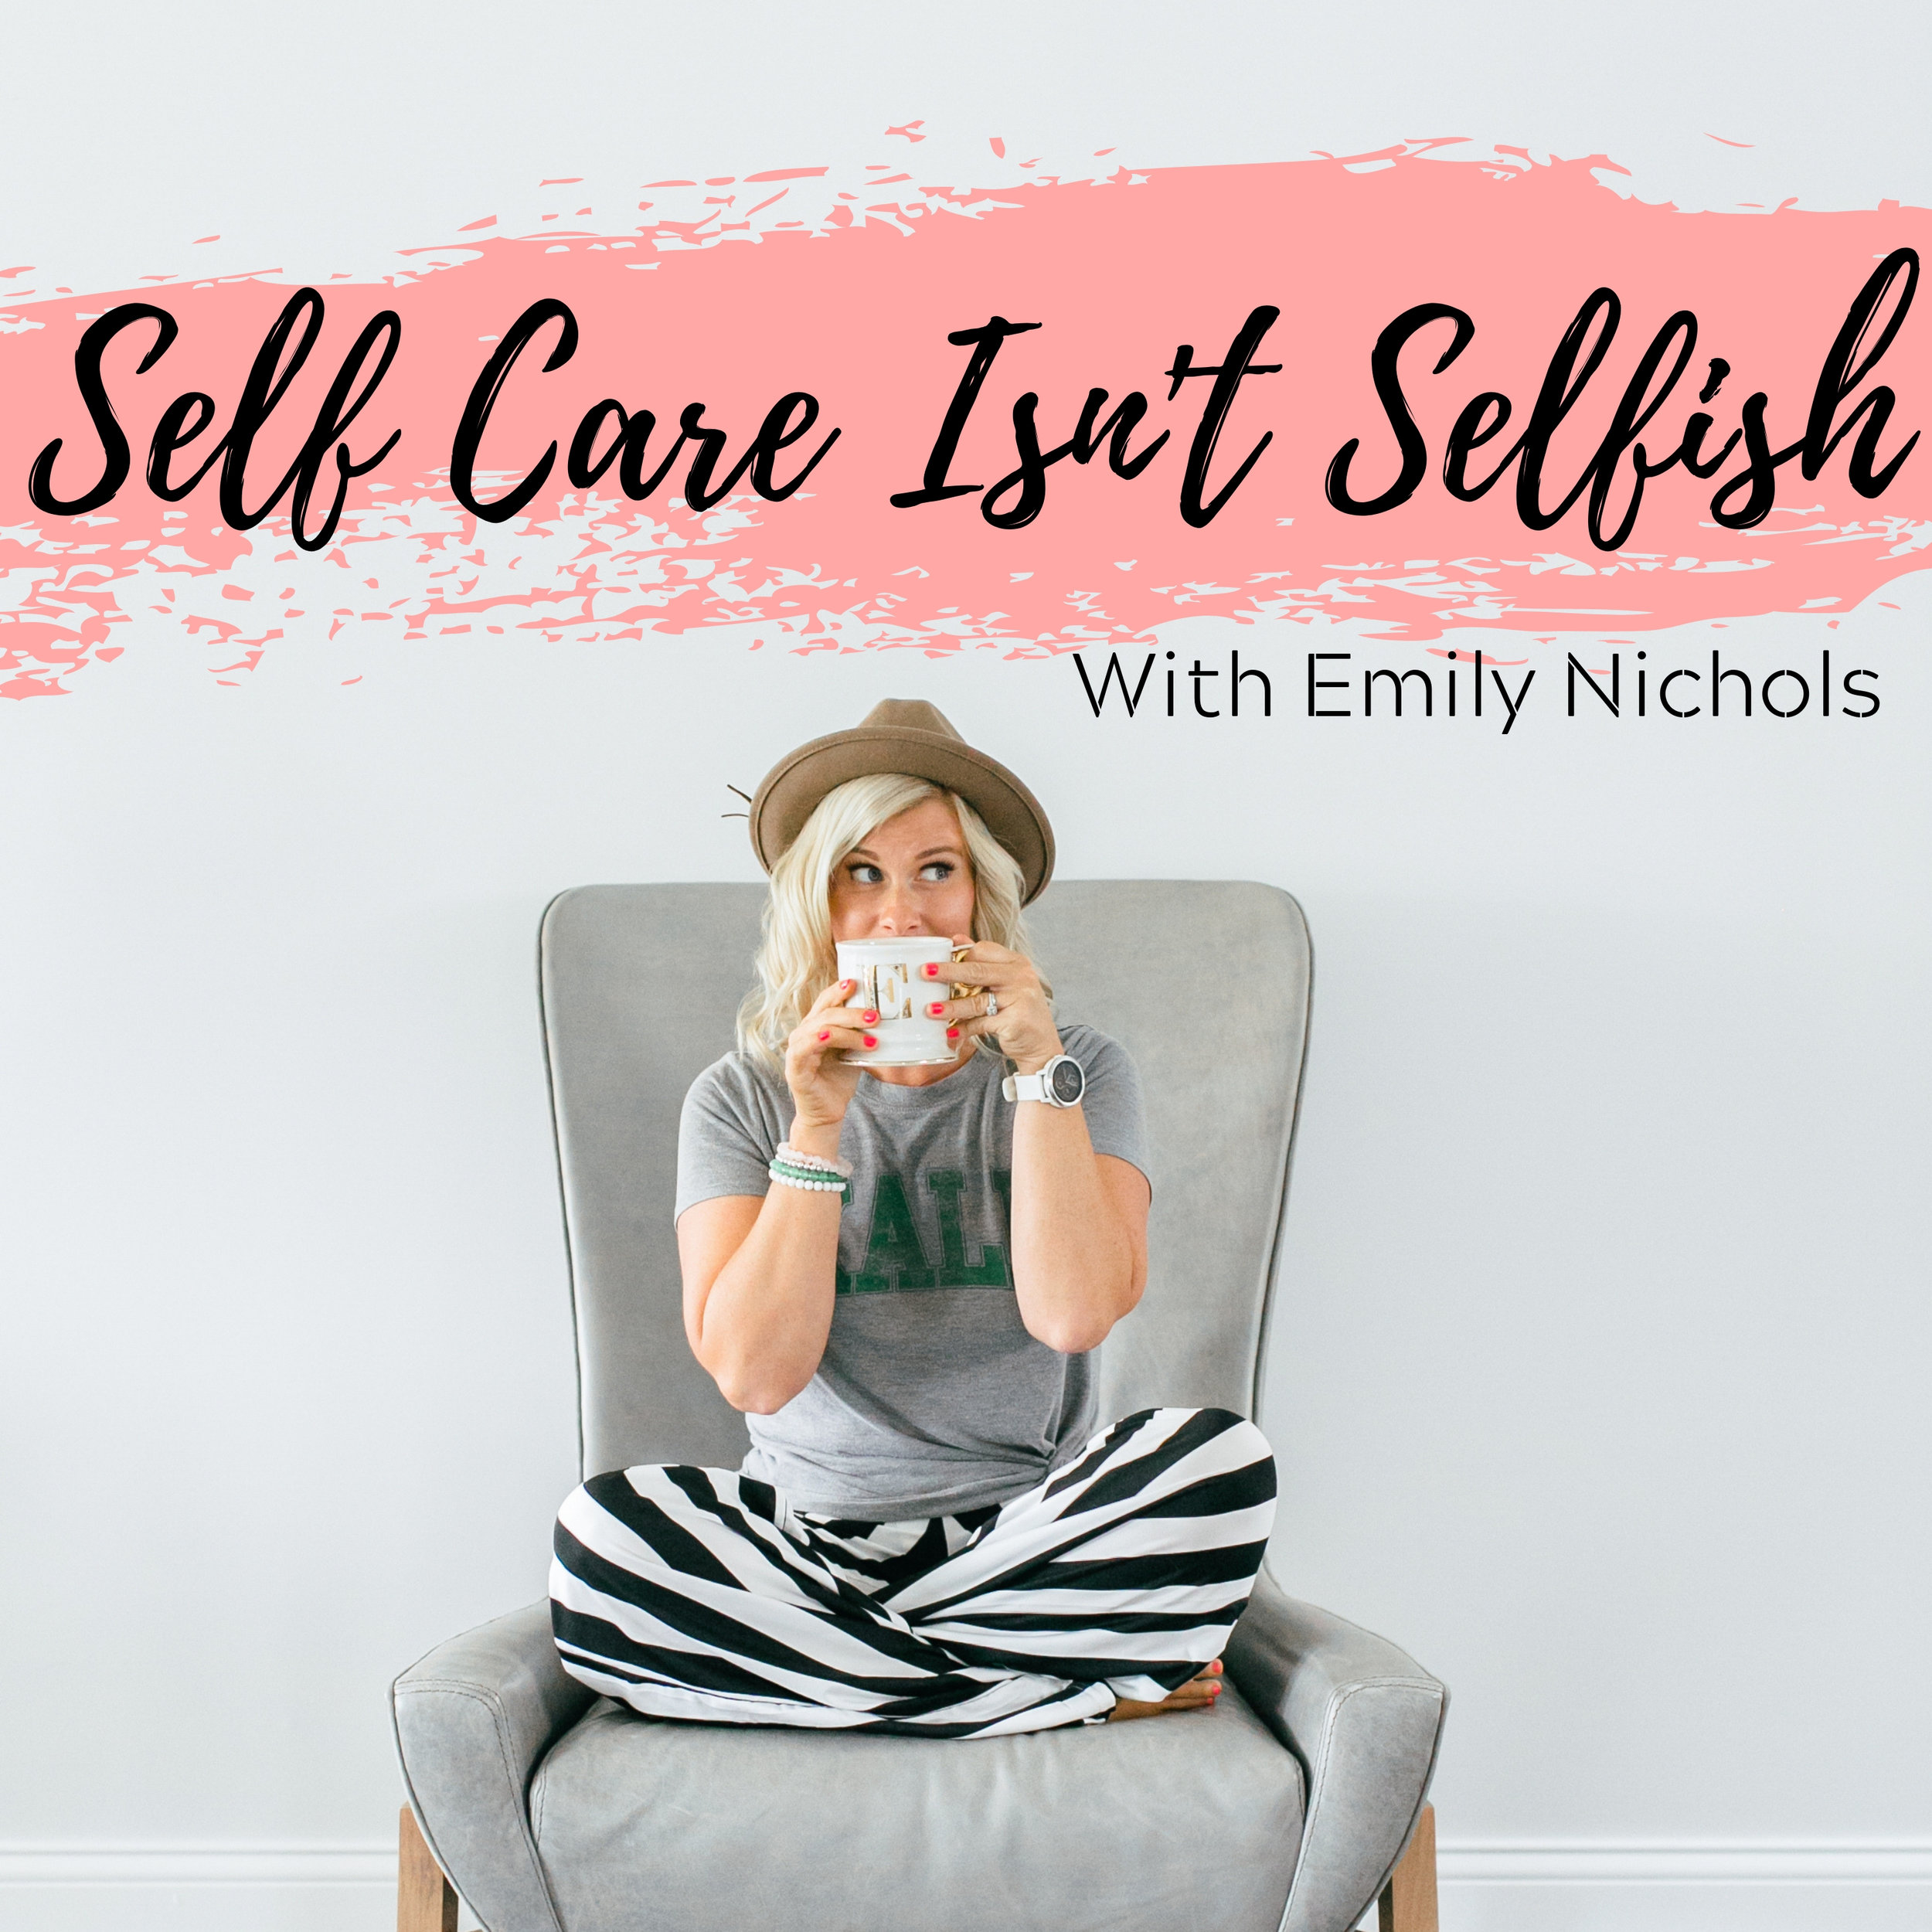 Listen to the Self Care Isn't Selfish Podcast! - click here